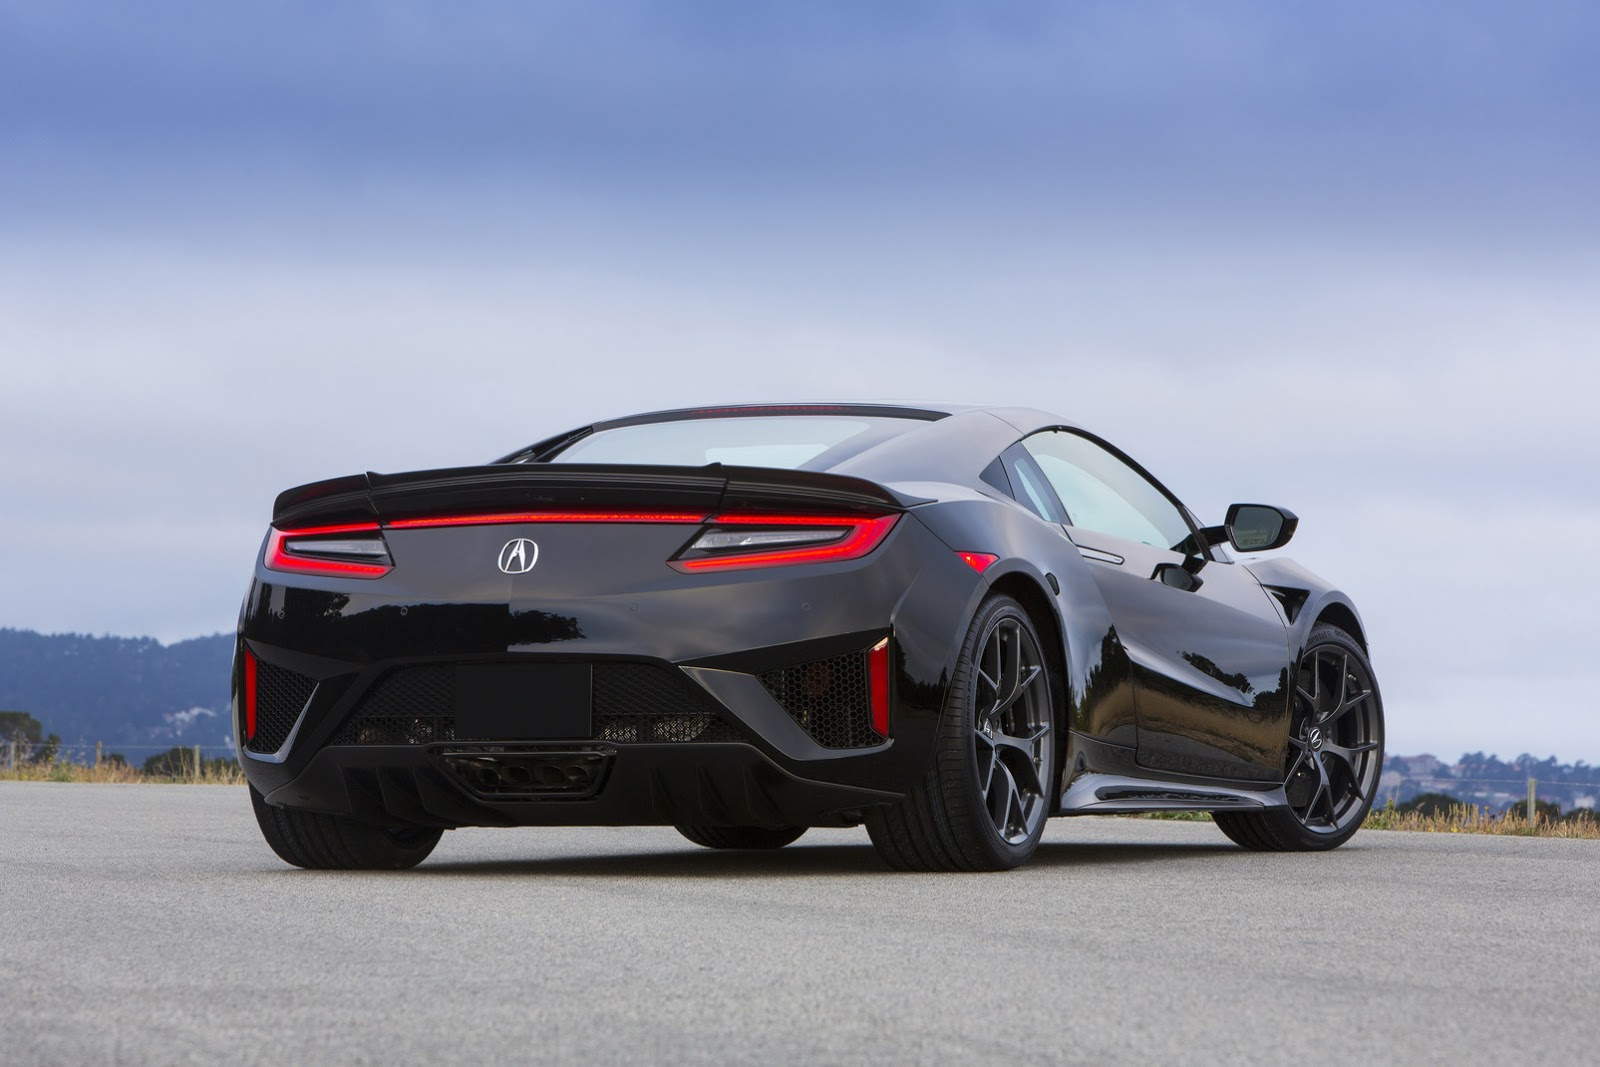 2017 Acura Nsx Already For Sale On Craigslist Sort Of